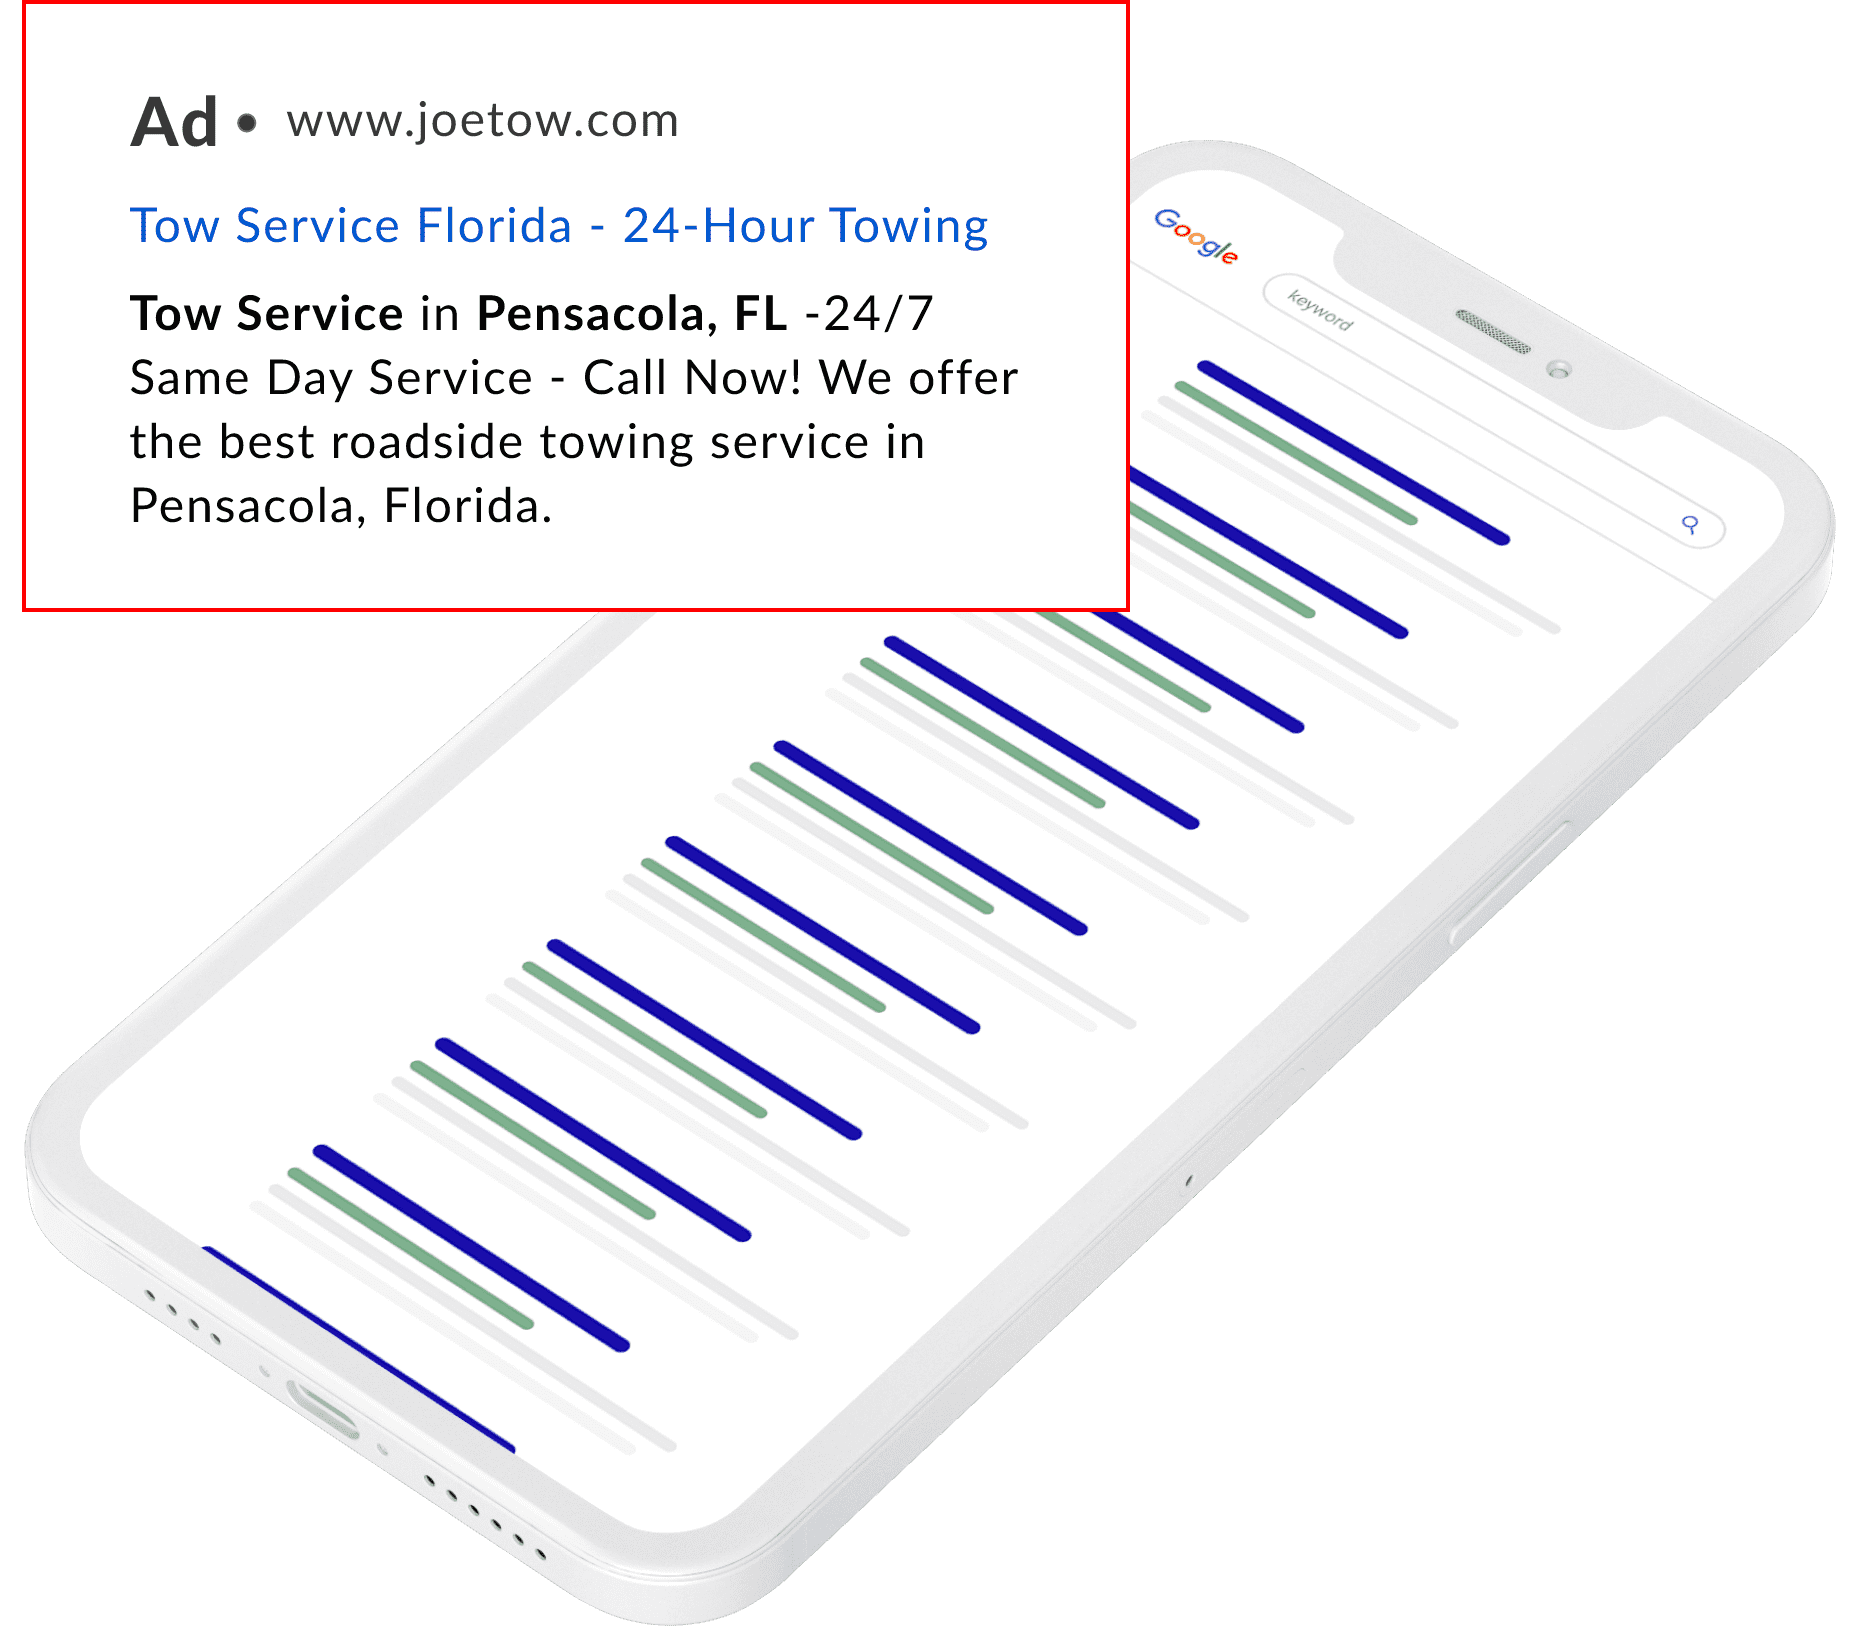 Illustration of a mobile phone showing a Google Adwords advertisement.